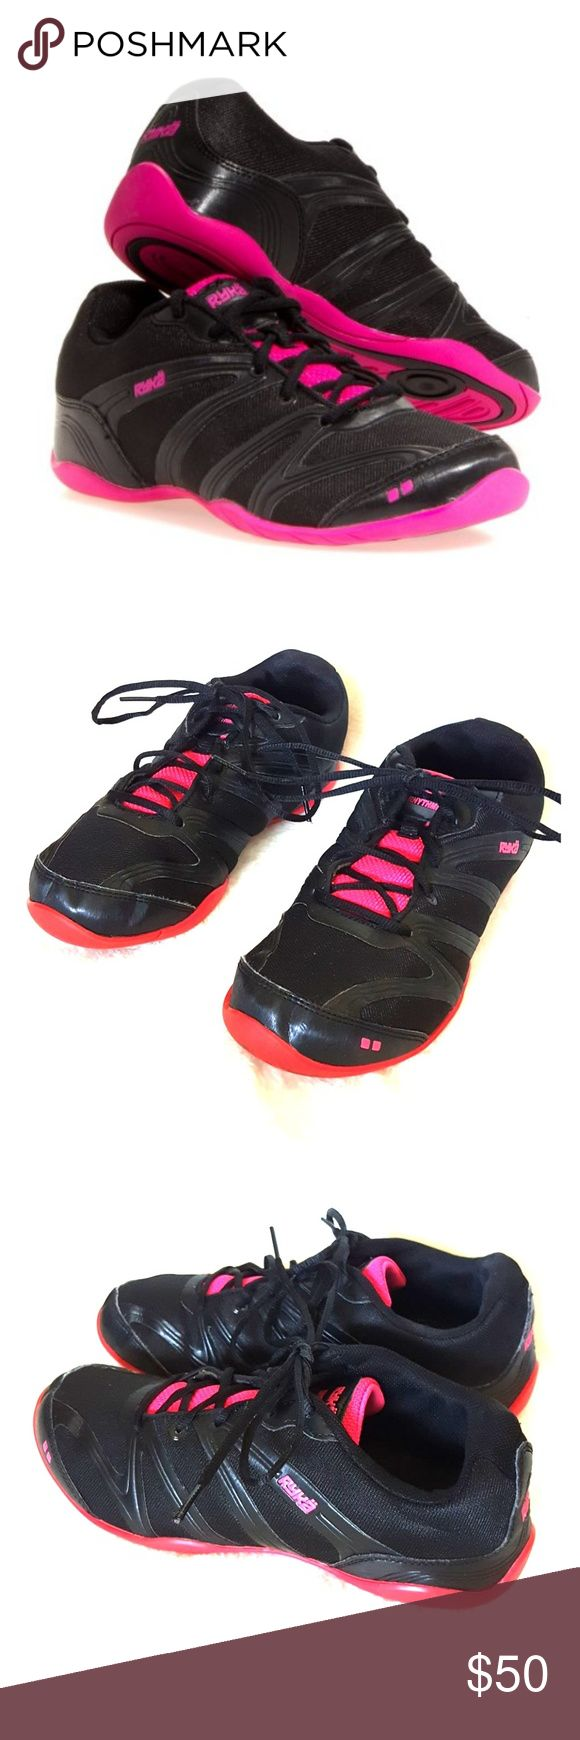 Ryka Black/Athena Pink Rhythmic Plus Sneakers Brand: Ryka. Color: Blacl, Pink. Size (Women's): 8.5. Style: Dress. Features an injected molded footbed, removable compression molded EVA internal midsole. Gently worn minor wear. Buyers can expect: Careful packaging, Fast shipping, & Delivery confirmation with each item purchased! PET FREE HOME & SMOKE-FREE HOME. Please note: Due to lighting and monitors, the items colours may be slightly differ with the picture. Ryka Shoes Sneakers